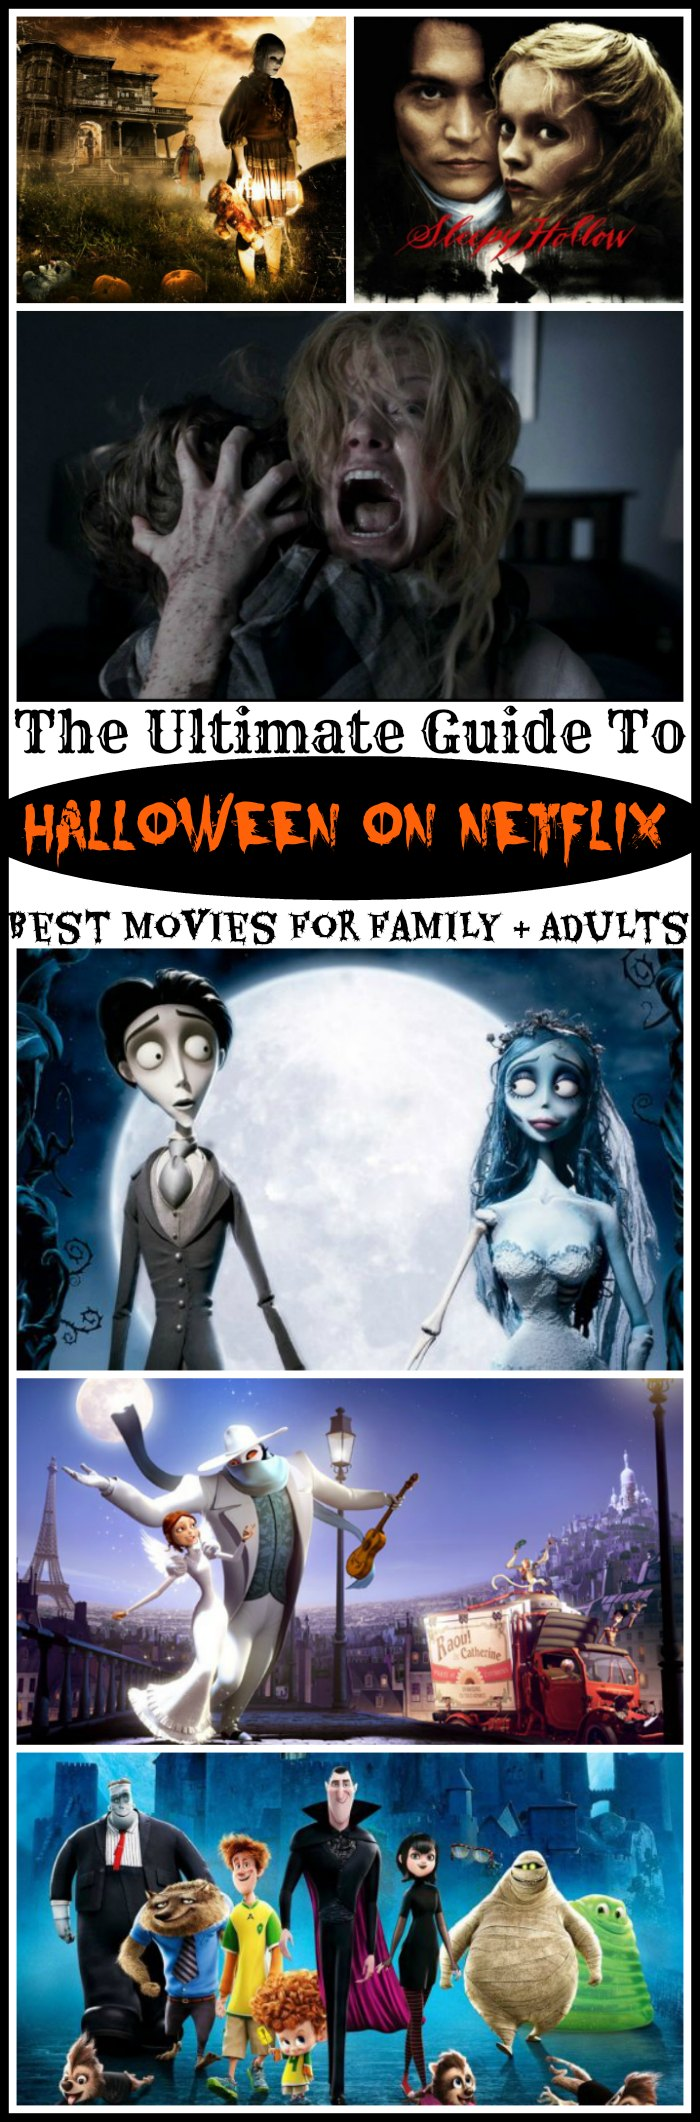 The Ultimate Guide To Halloween On Netflix